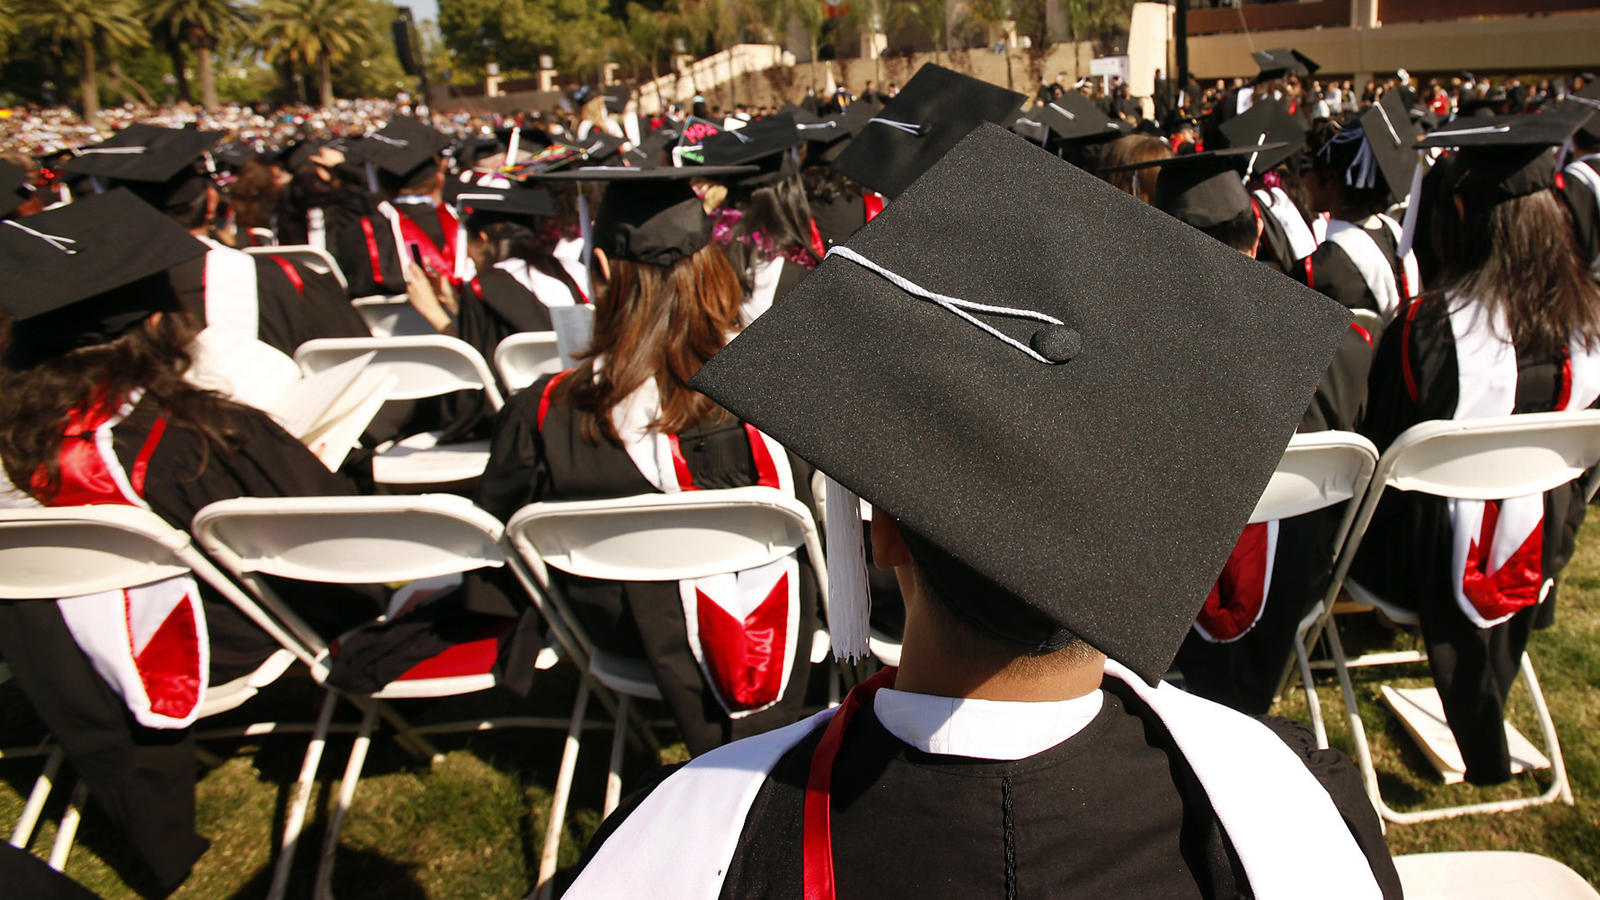 Commencement ceremonies at Cal State Northridge. (Al Seib / Los Angeles Times)